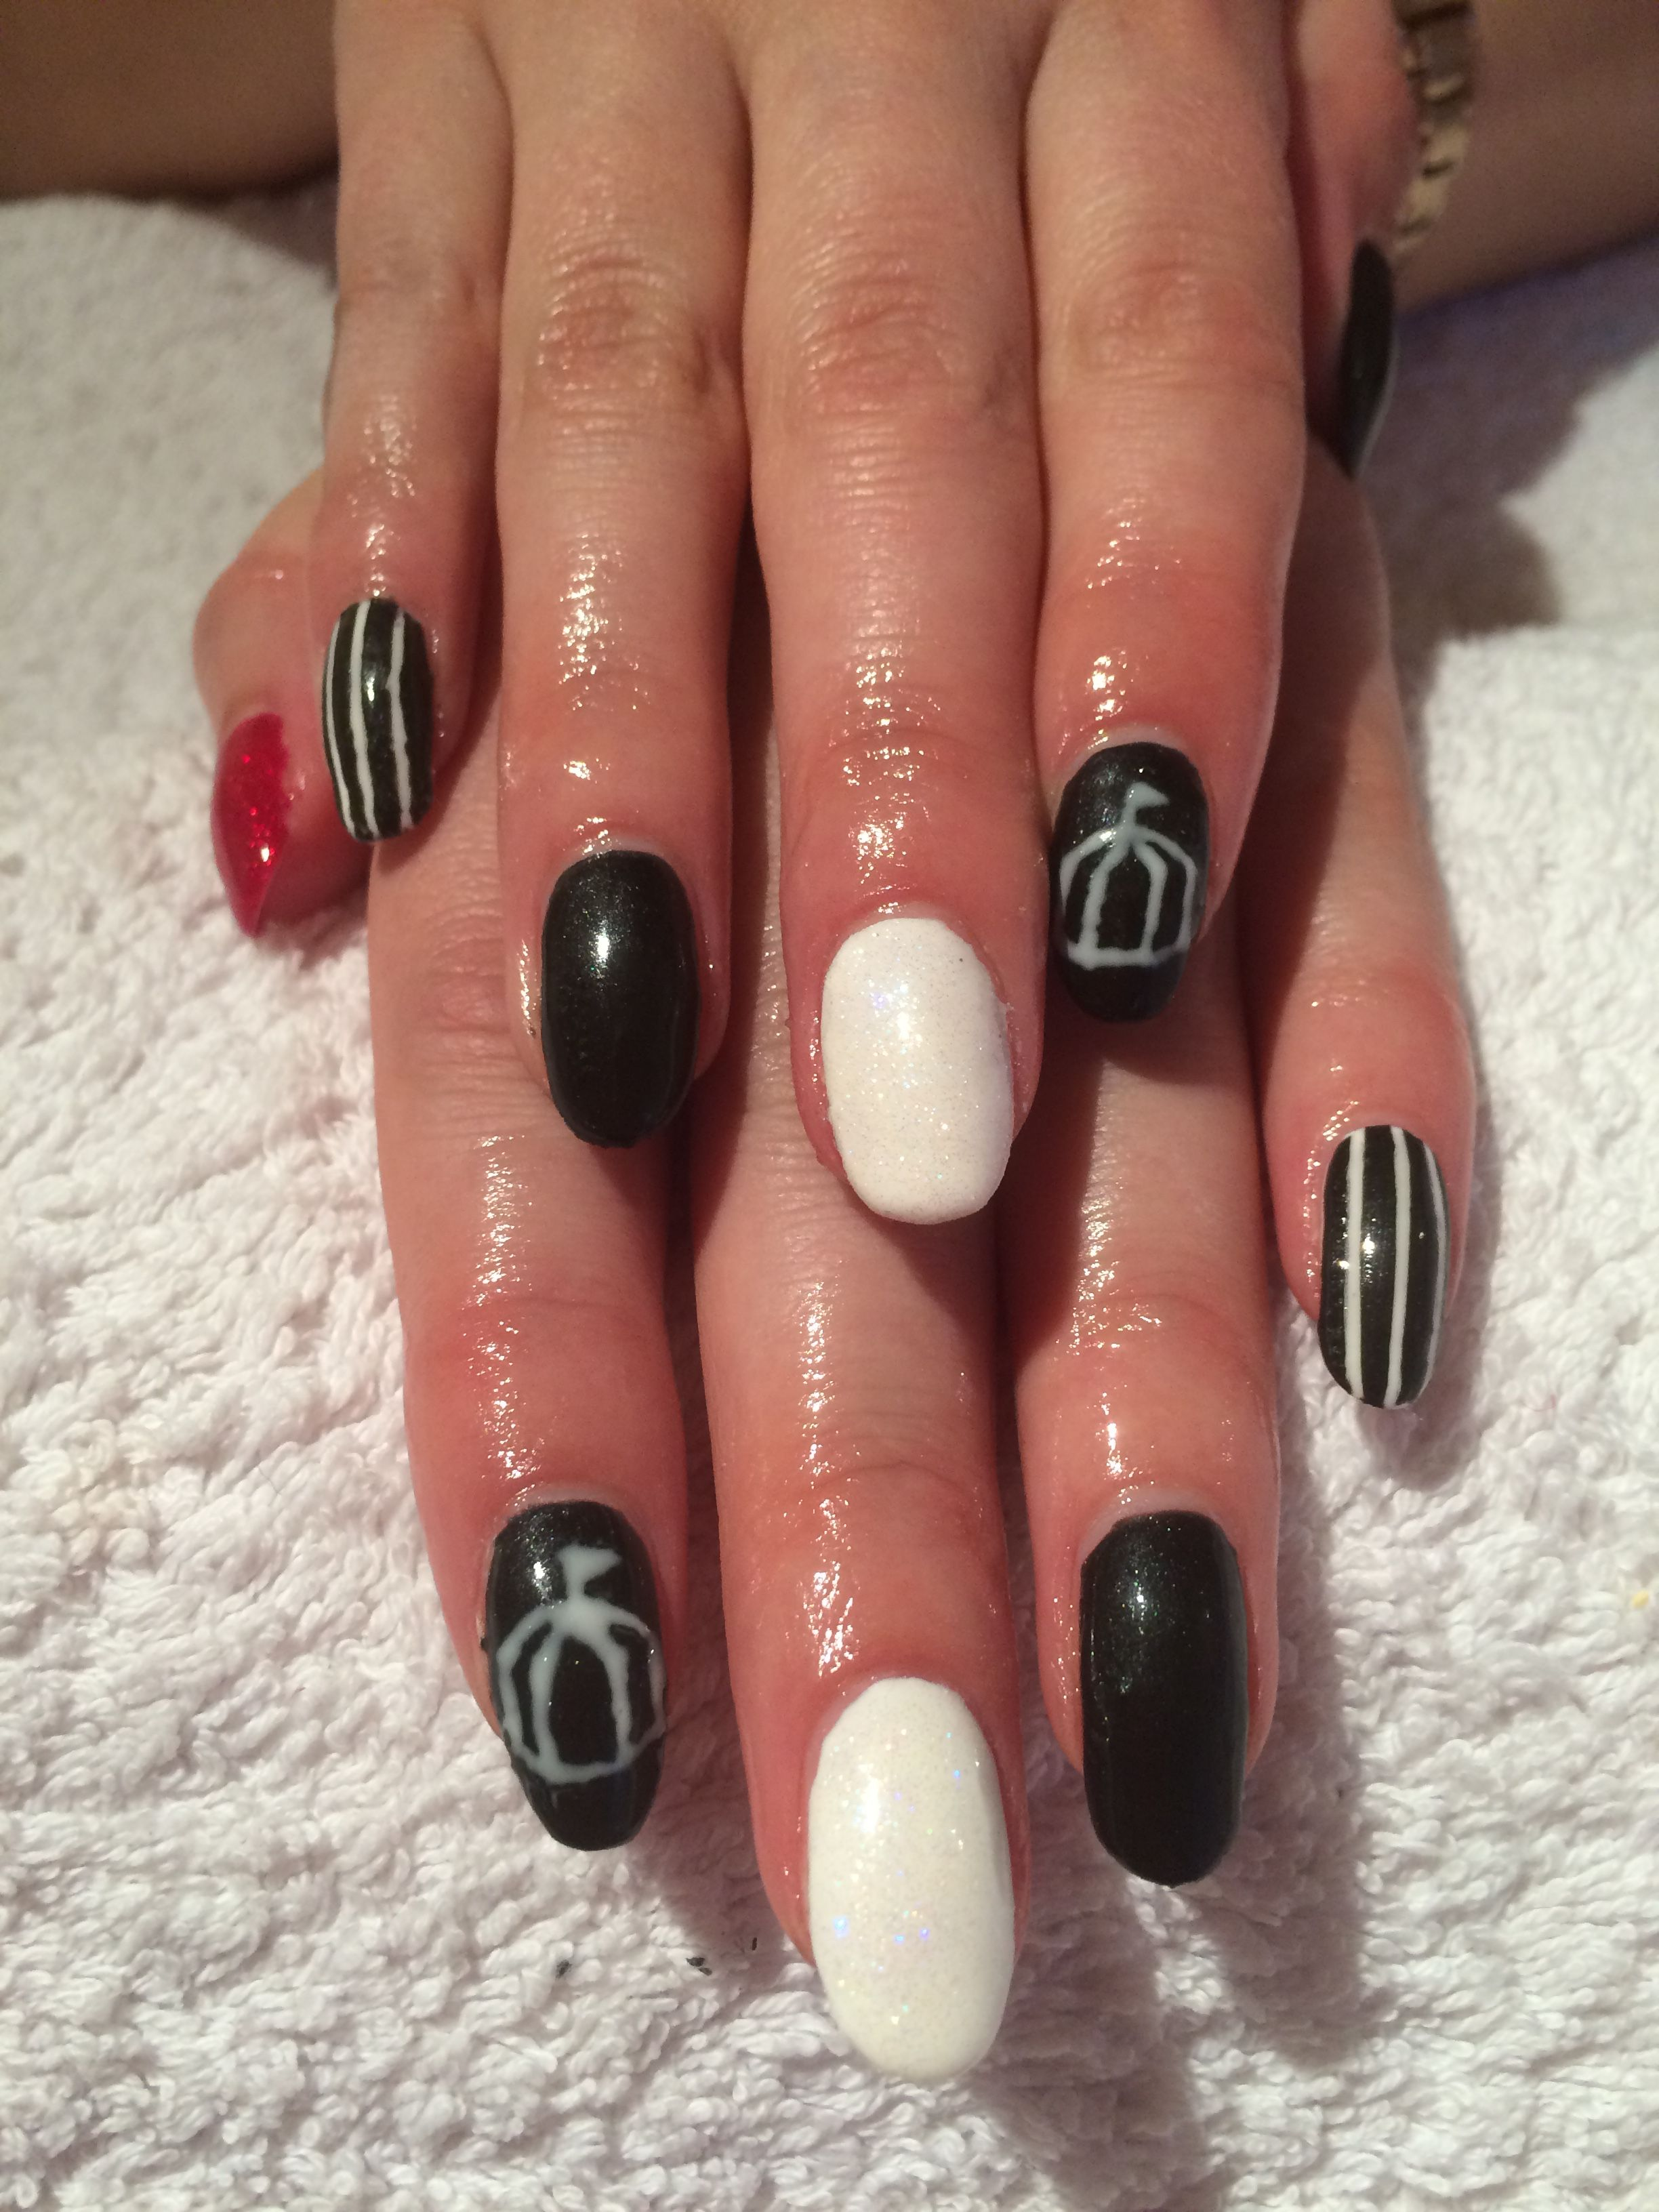 Night Circus nail art by Sarah Dailly - Absolute Beauty: https://www.facebook.com/ABSOLUTEBEAUTYEDIN